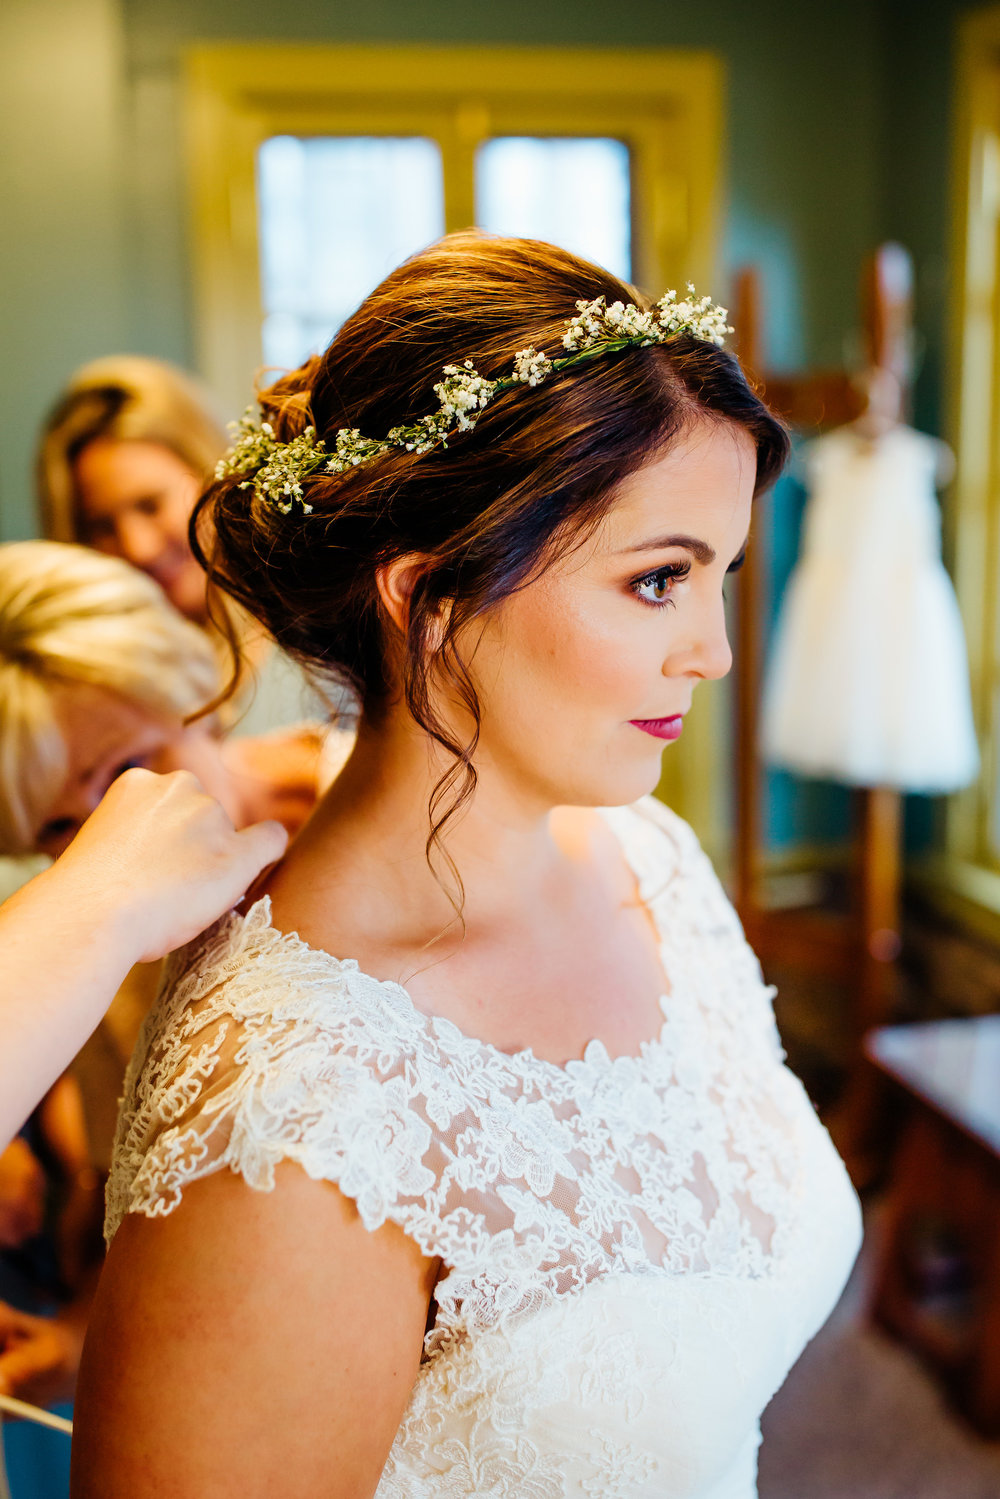 bride-beauty-wedding-hair